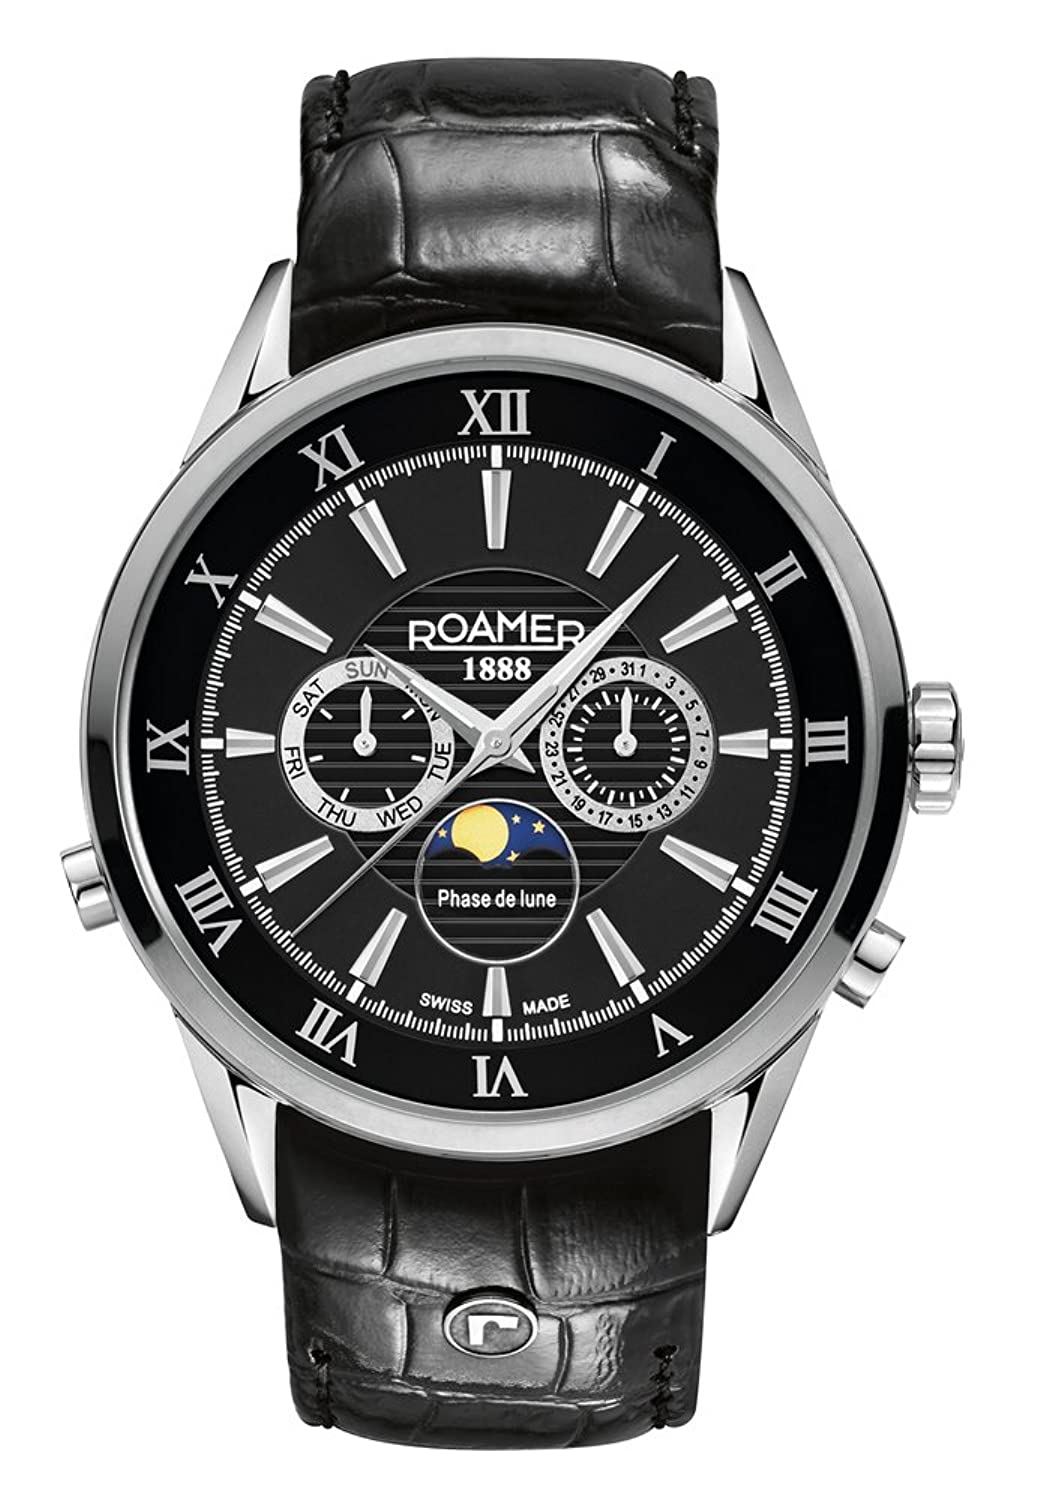 Roamer of Switzerland Herren-Armbanduhr Chronograph Quarz 508821 41 53 05